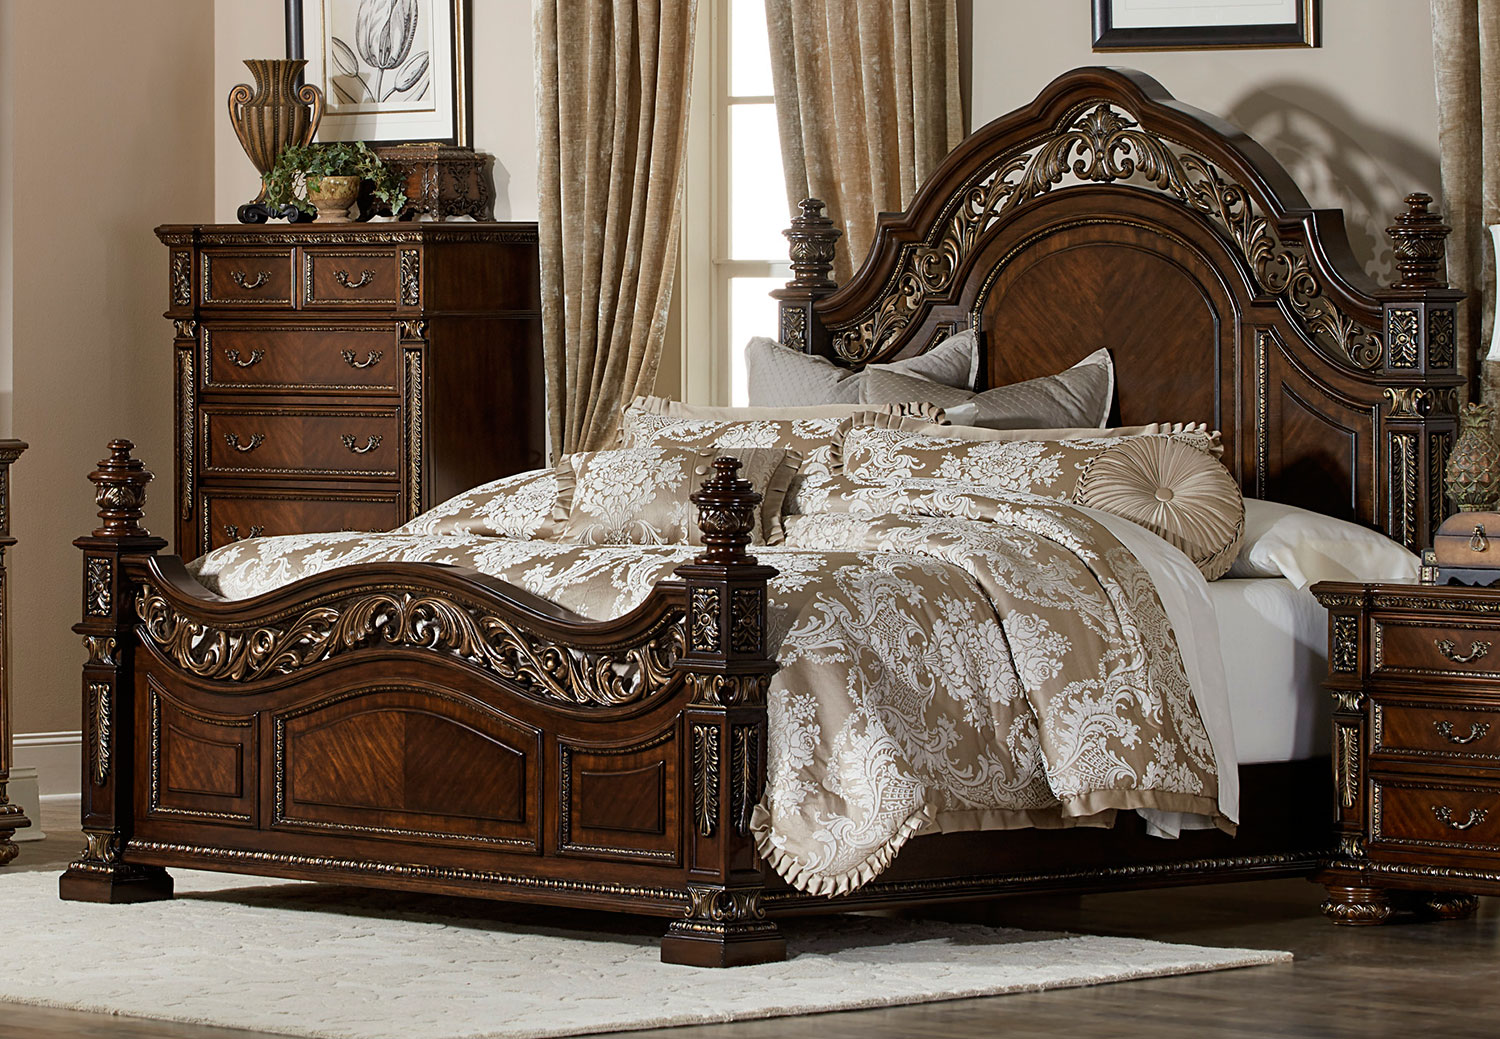 Homelegance Catalonia Bed - Cherry